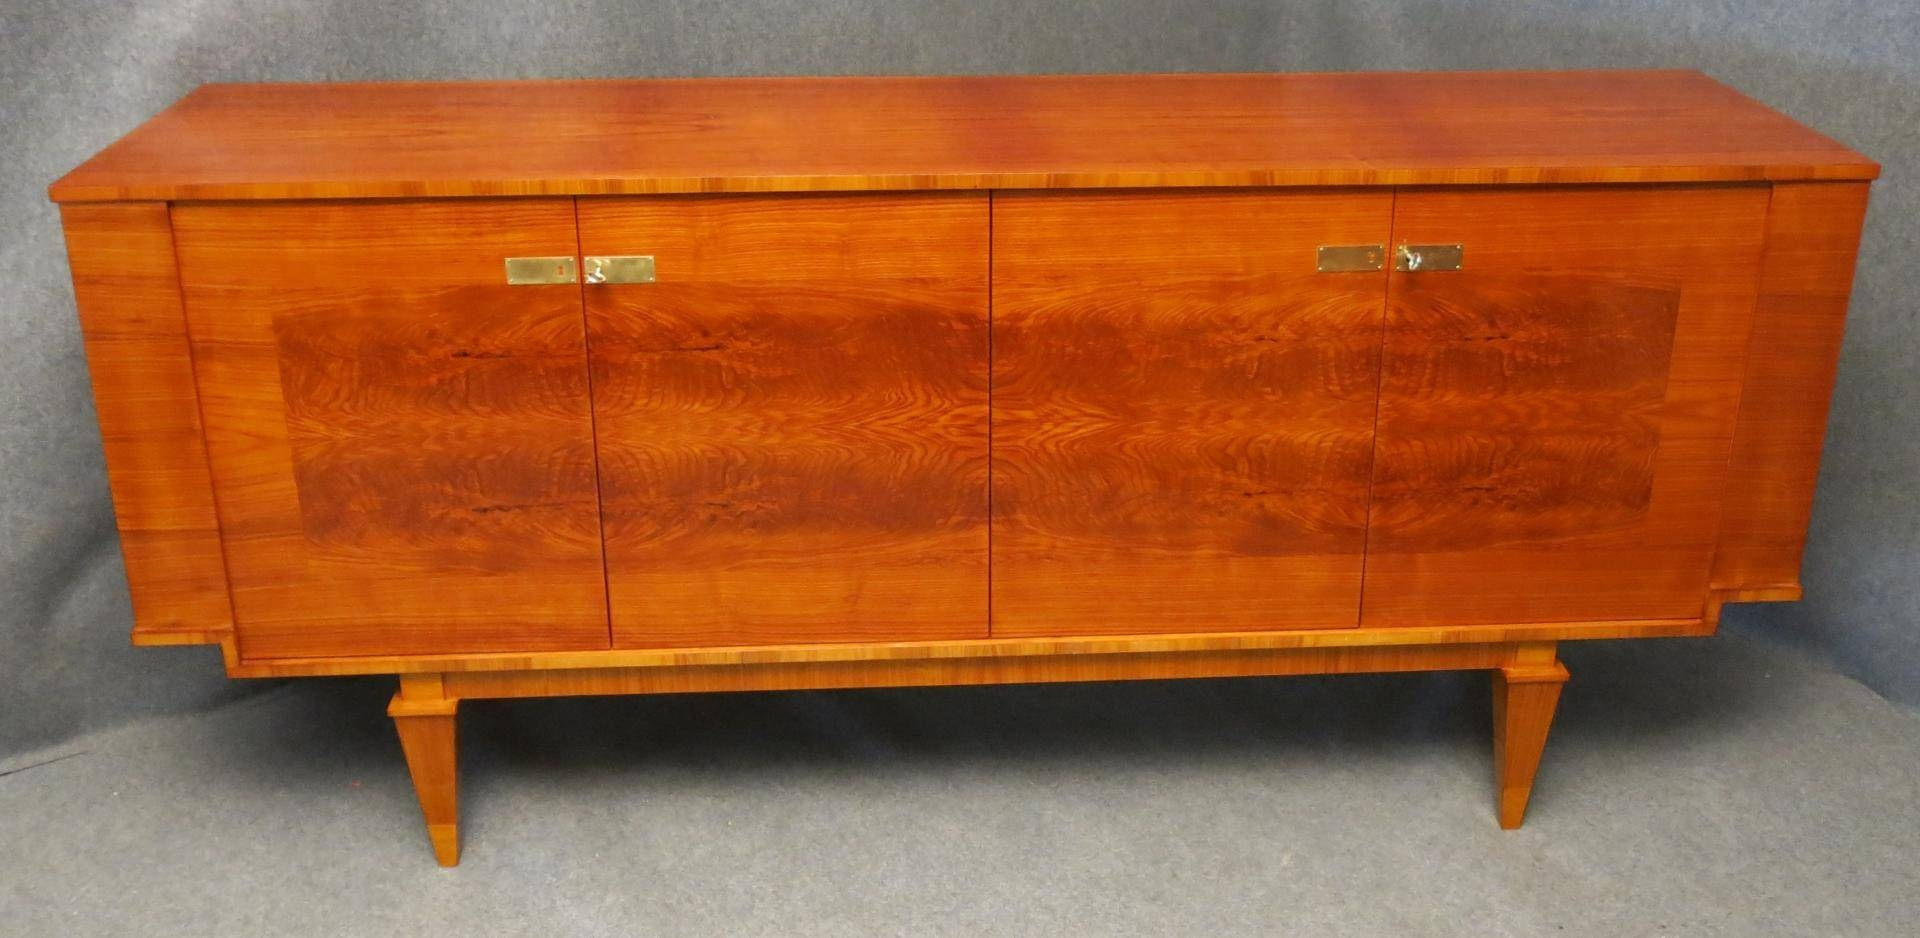 French Art Deco Sideboard, 1920S For Sale At Pamono intended for Joop Sideboards (Image 1 of 15)